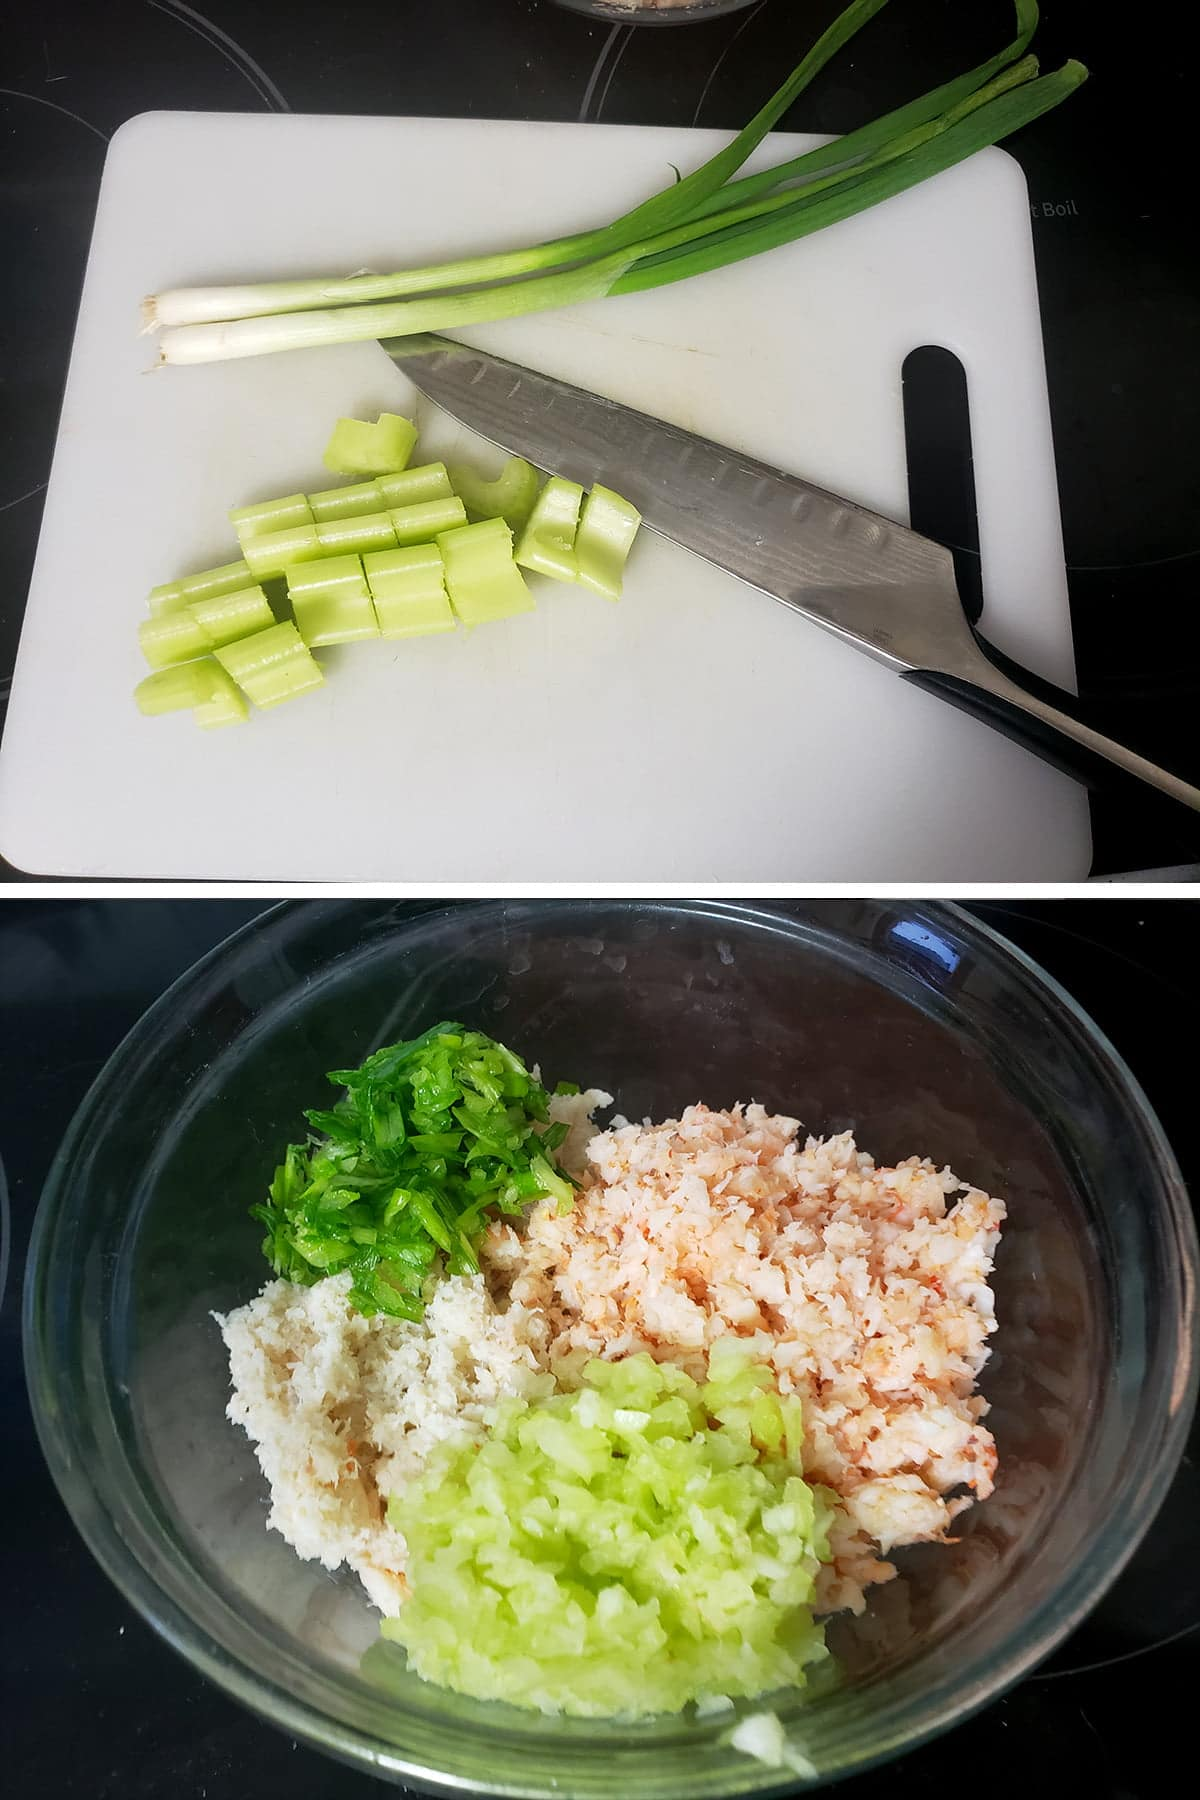 A two part compilation image showing a knife and cutting board with celery and green onions, and a bowl with the chopped celery and green onions in it.